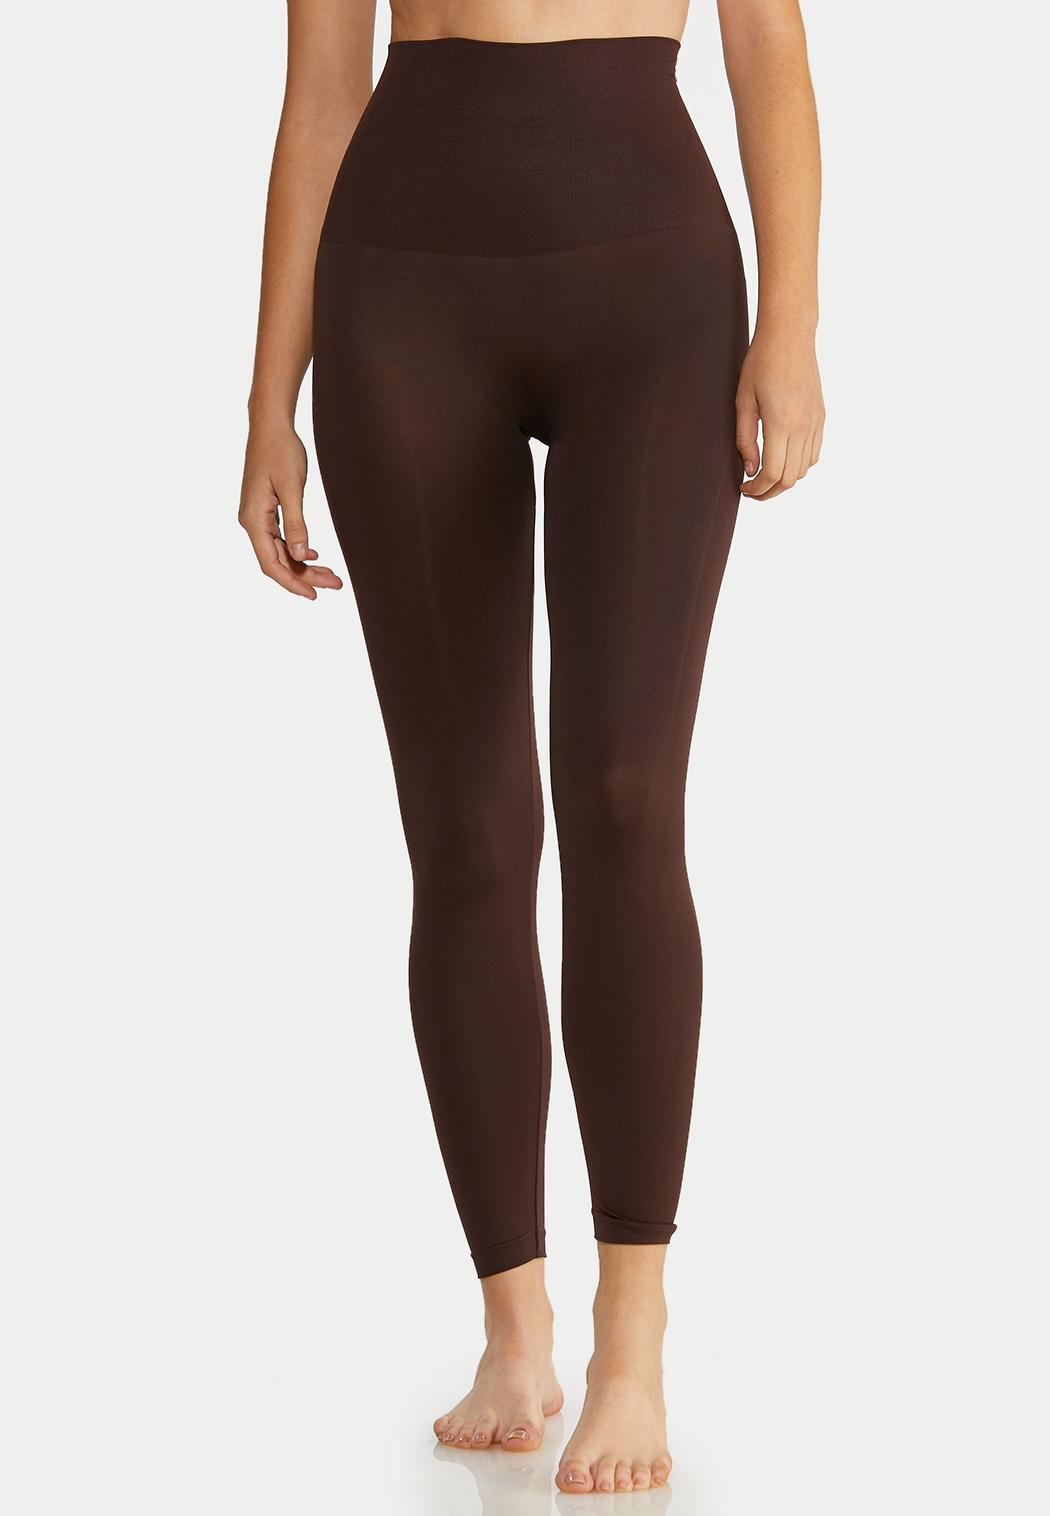 Plus Size The Perfect Brown Shaping Leggings